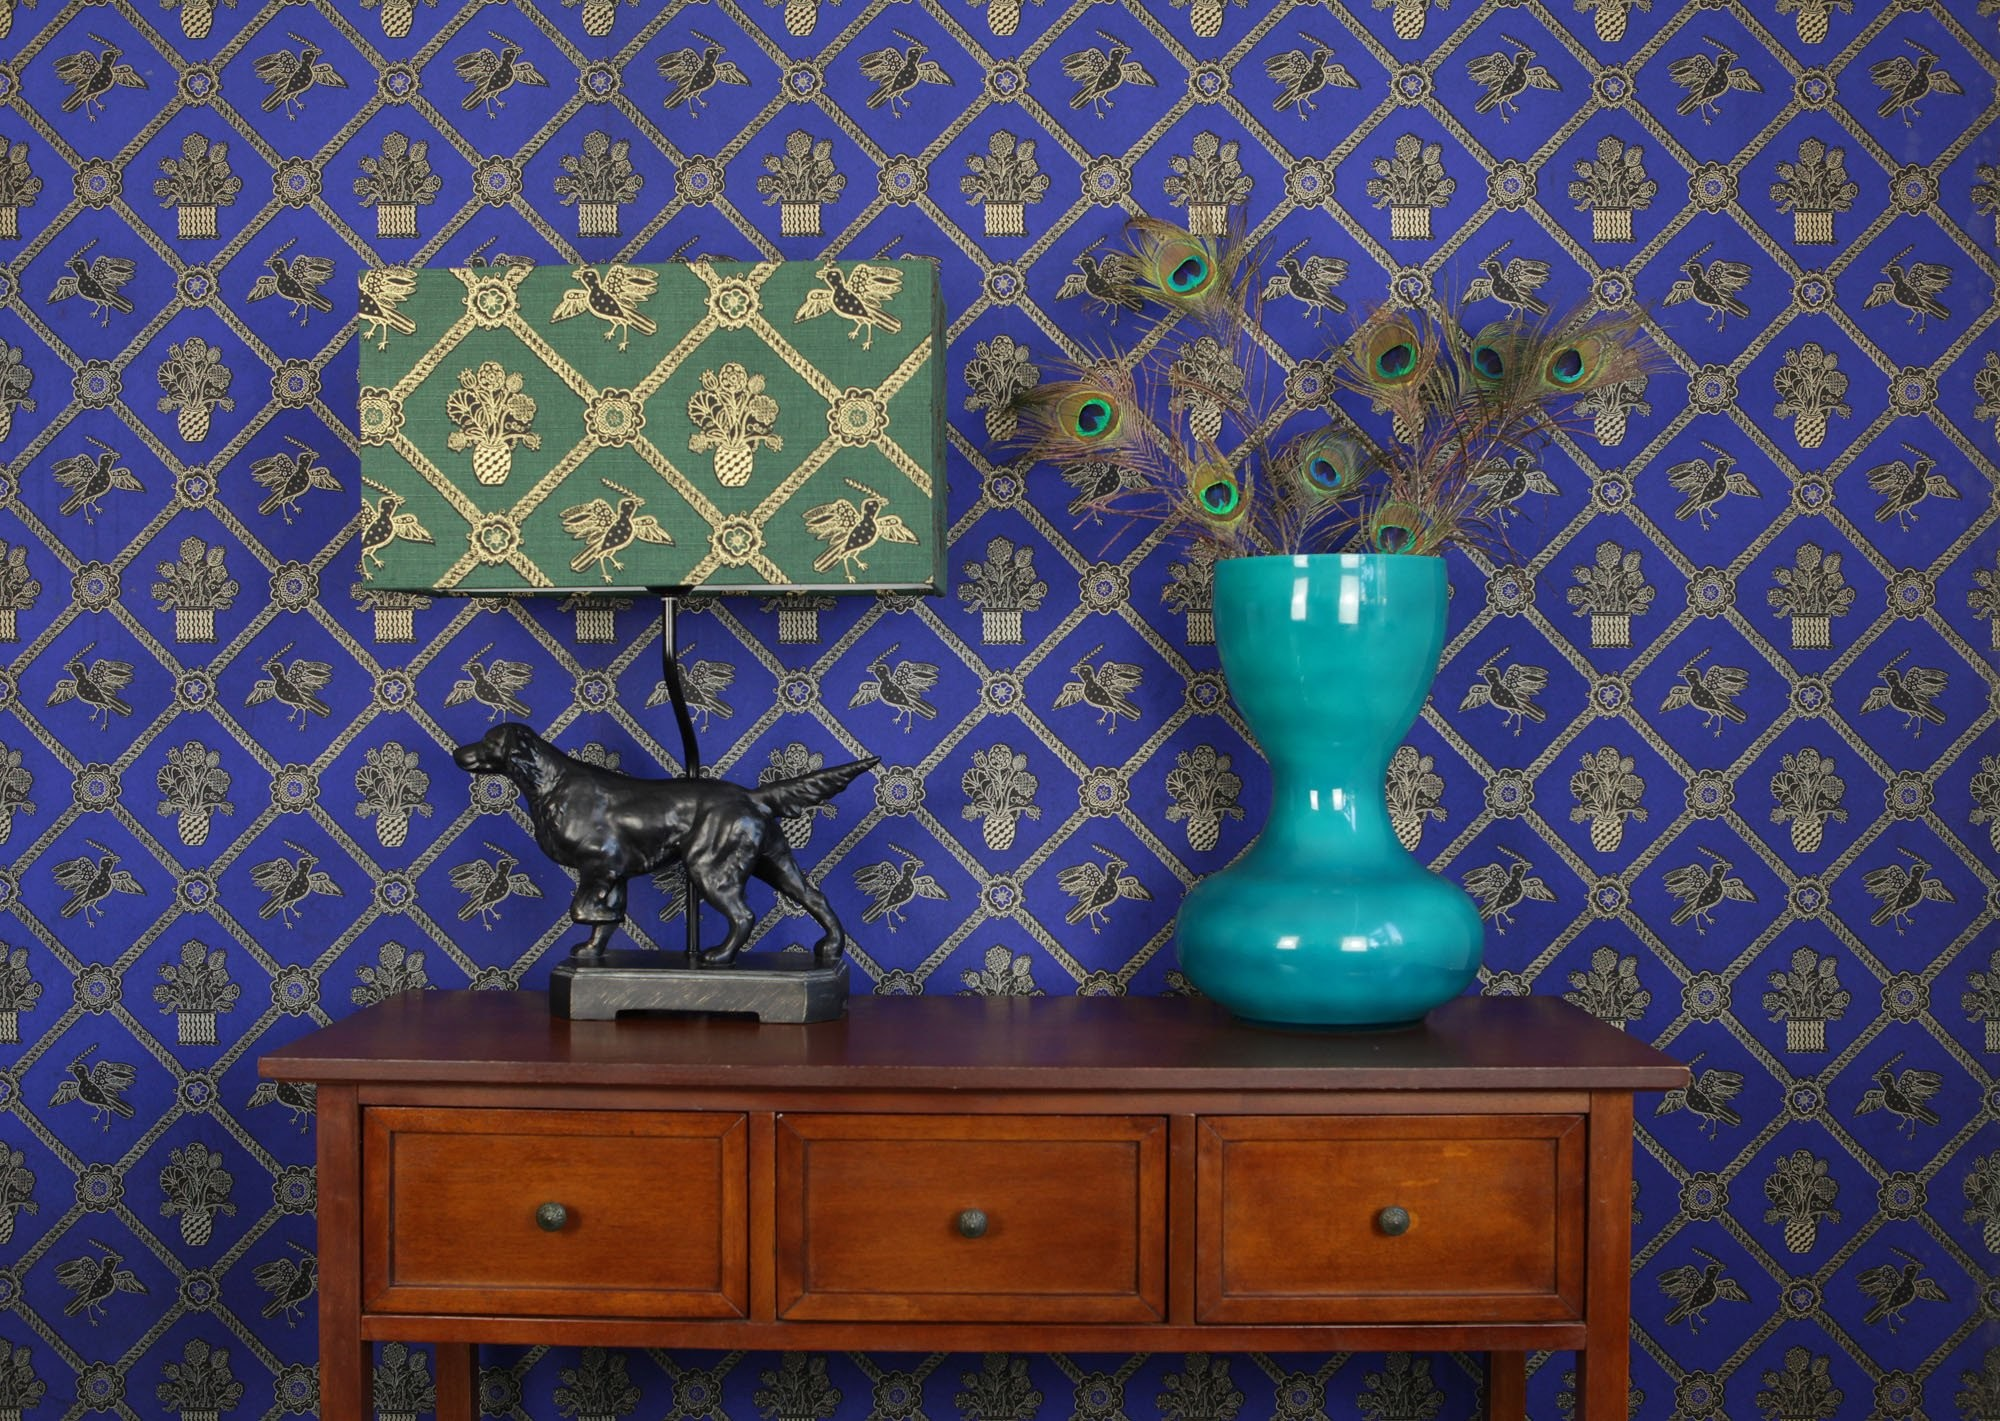 2000x1421 Rope Trellis Wallpaper - Royal Blue / Black / Gold Metallic